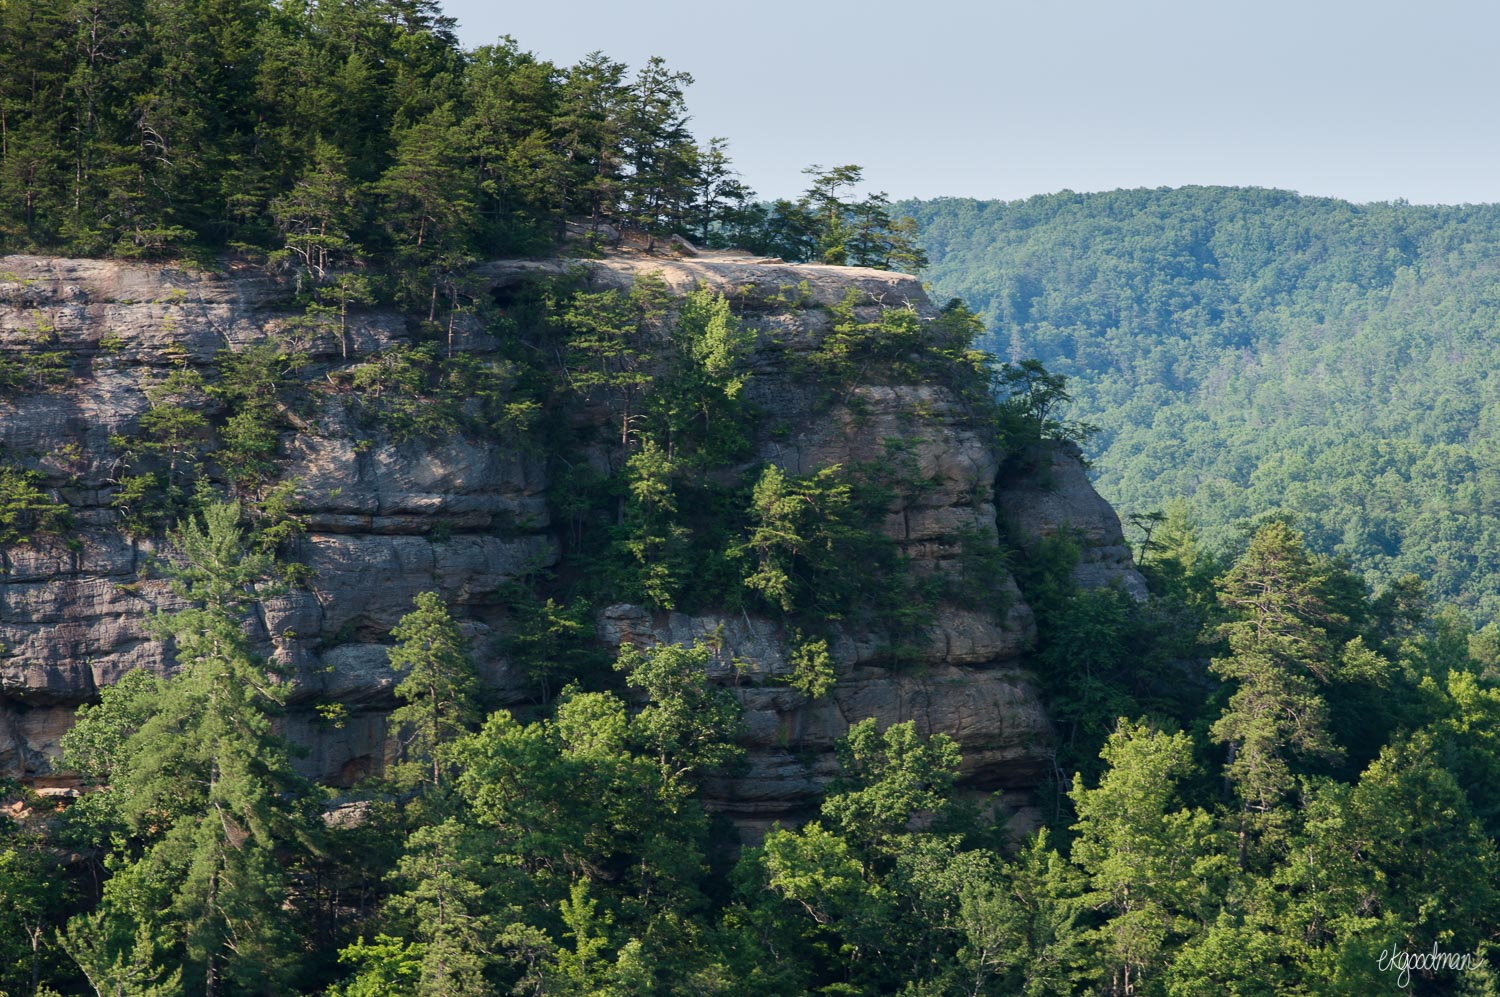 Lookout Point, as seen from the natural bridge